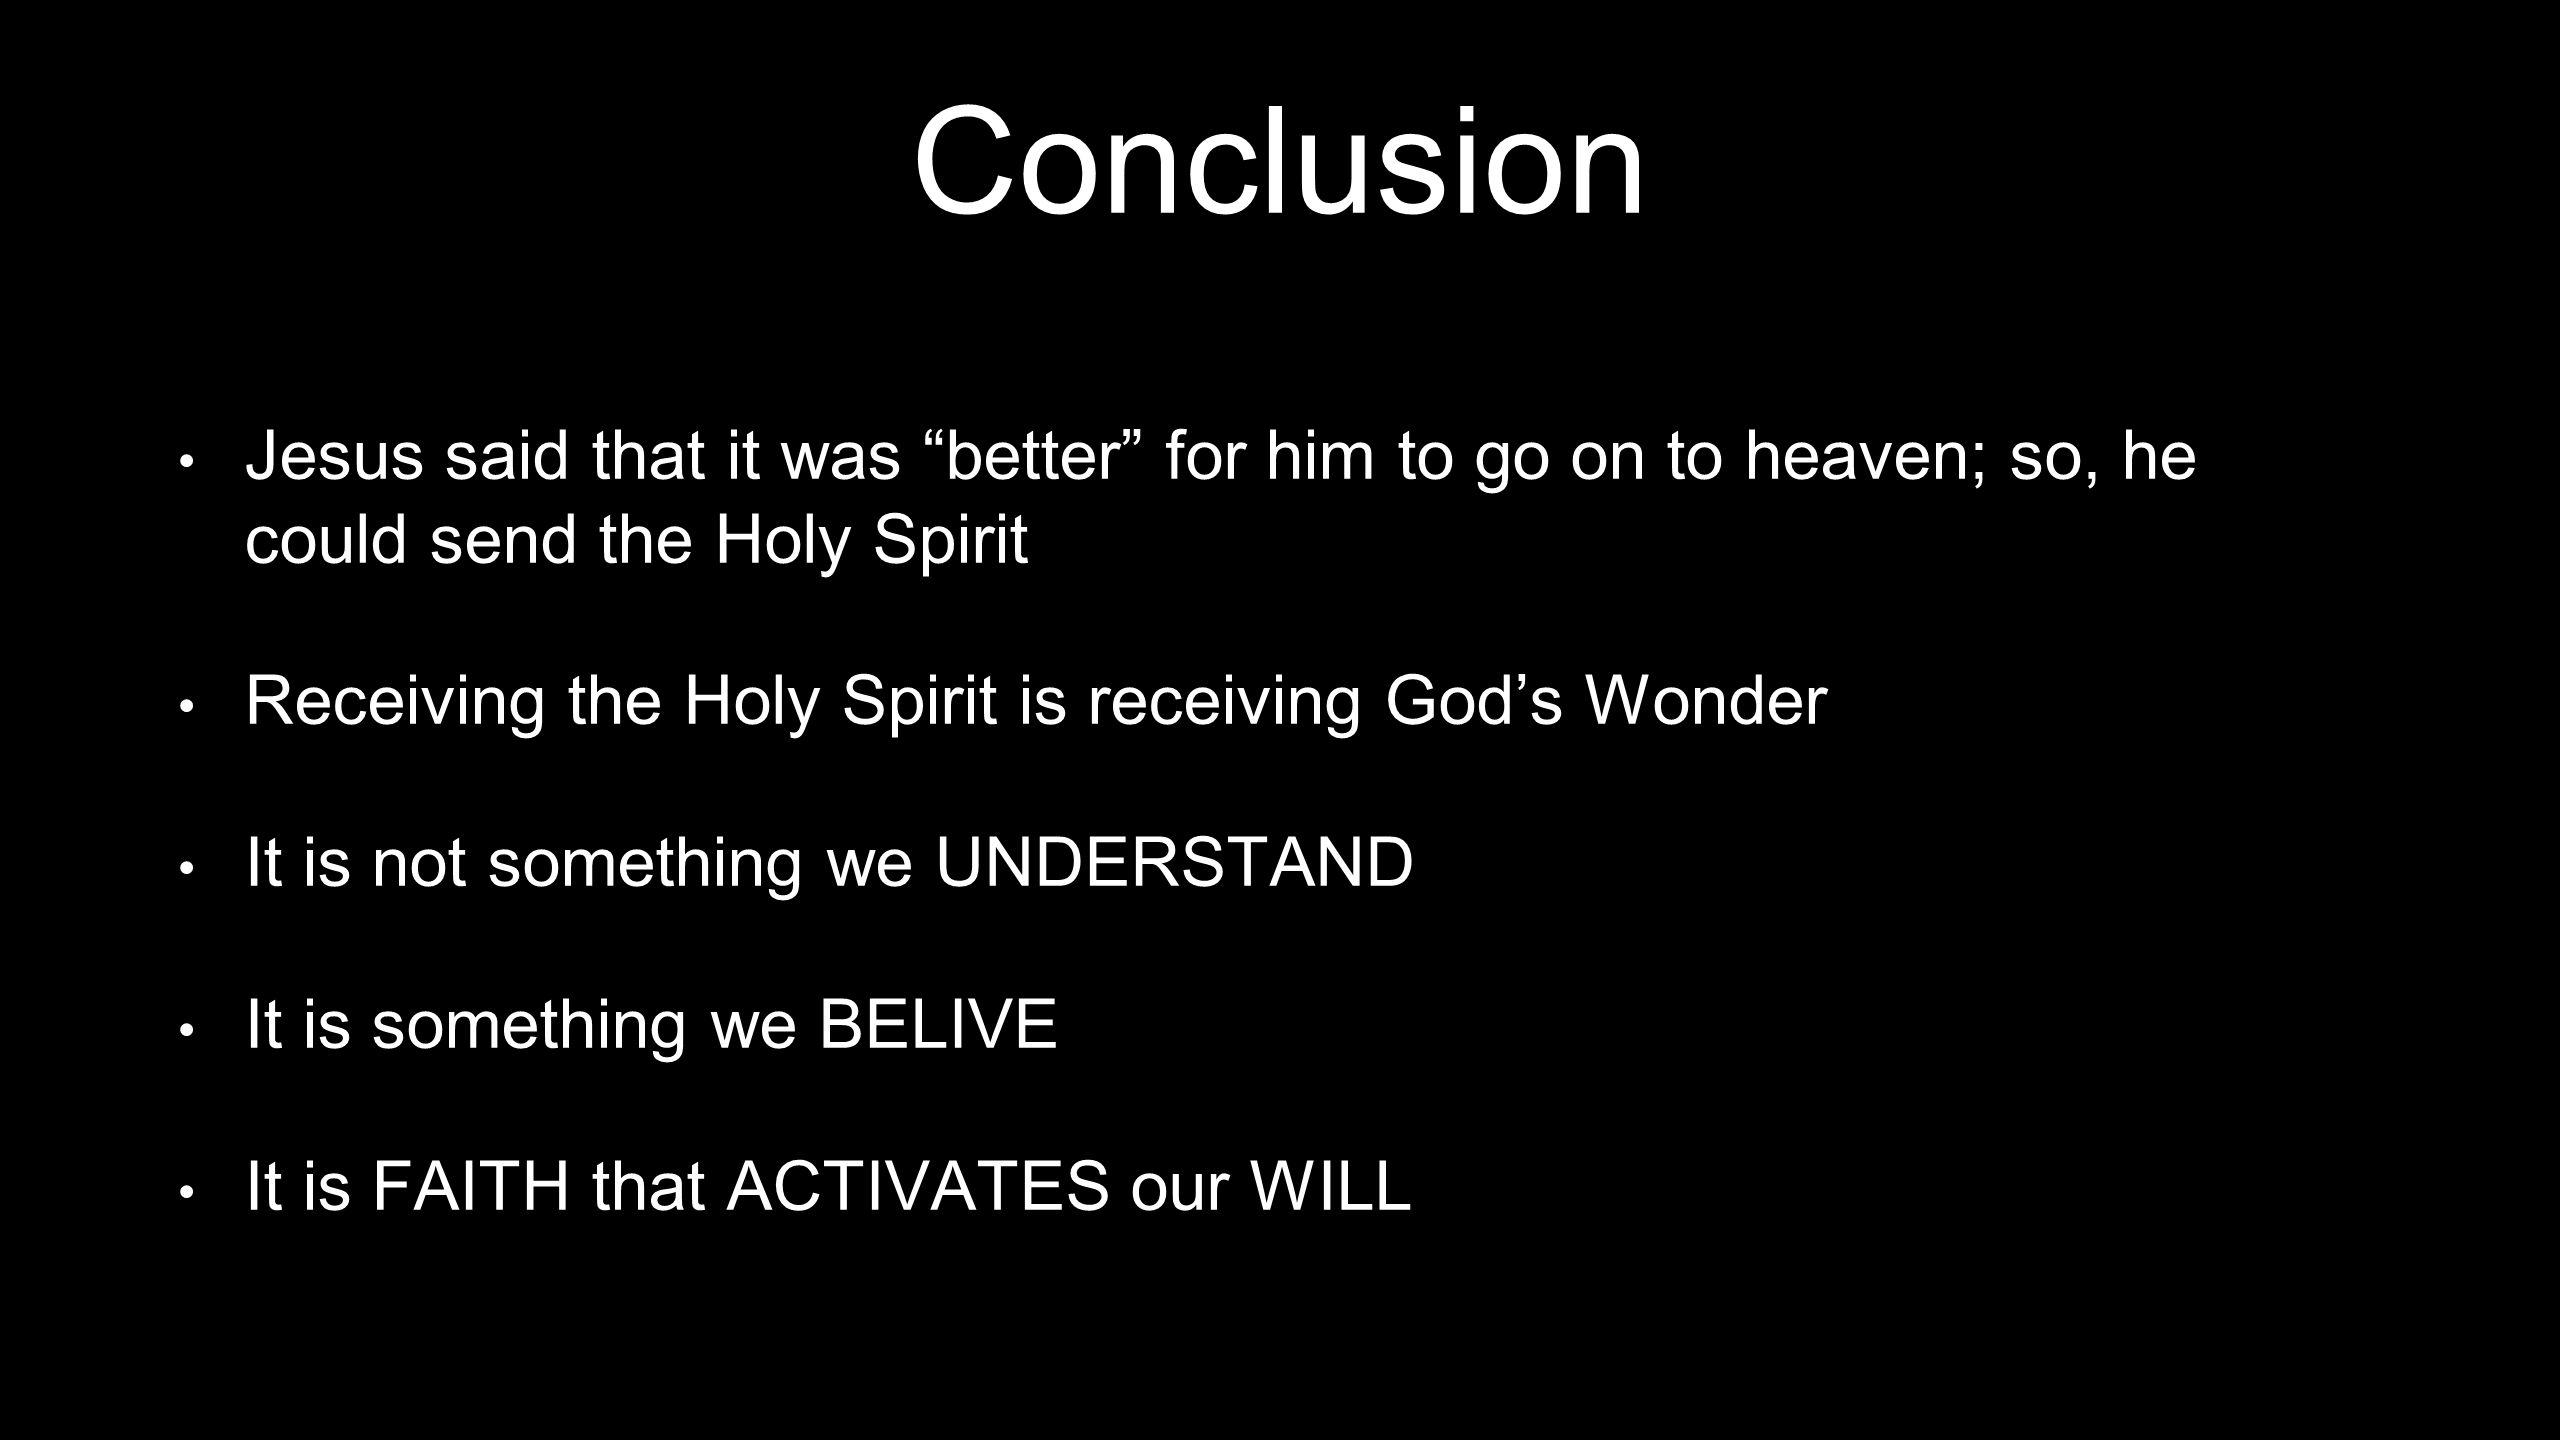 Conclusion Jesus said that it was better for him to go on to heaven; so, he could send the Holy Spirit Receiving the Holy Spirit is receiving God's Wonder It is not something we UNDERSTAND It is something we BELIVE It is FAITH that ACTIVATES our WILL